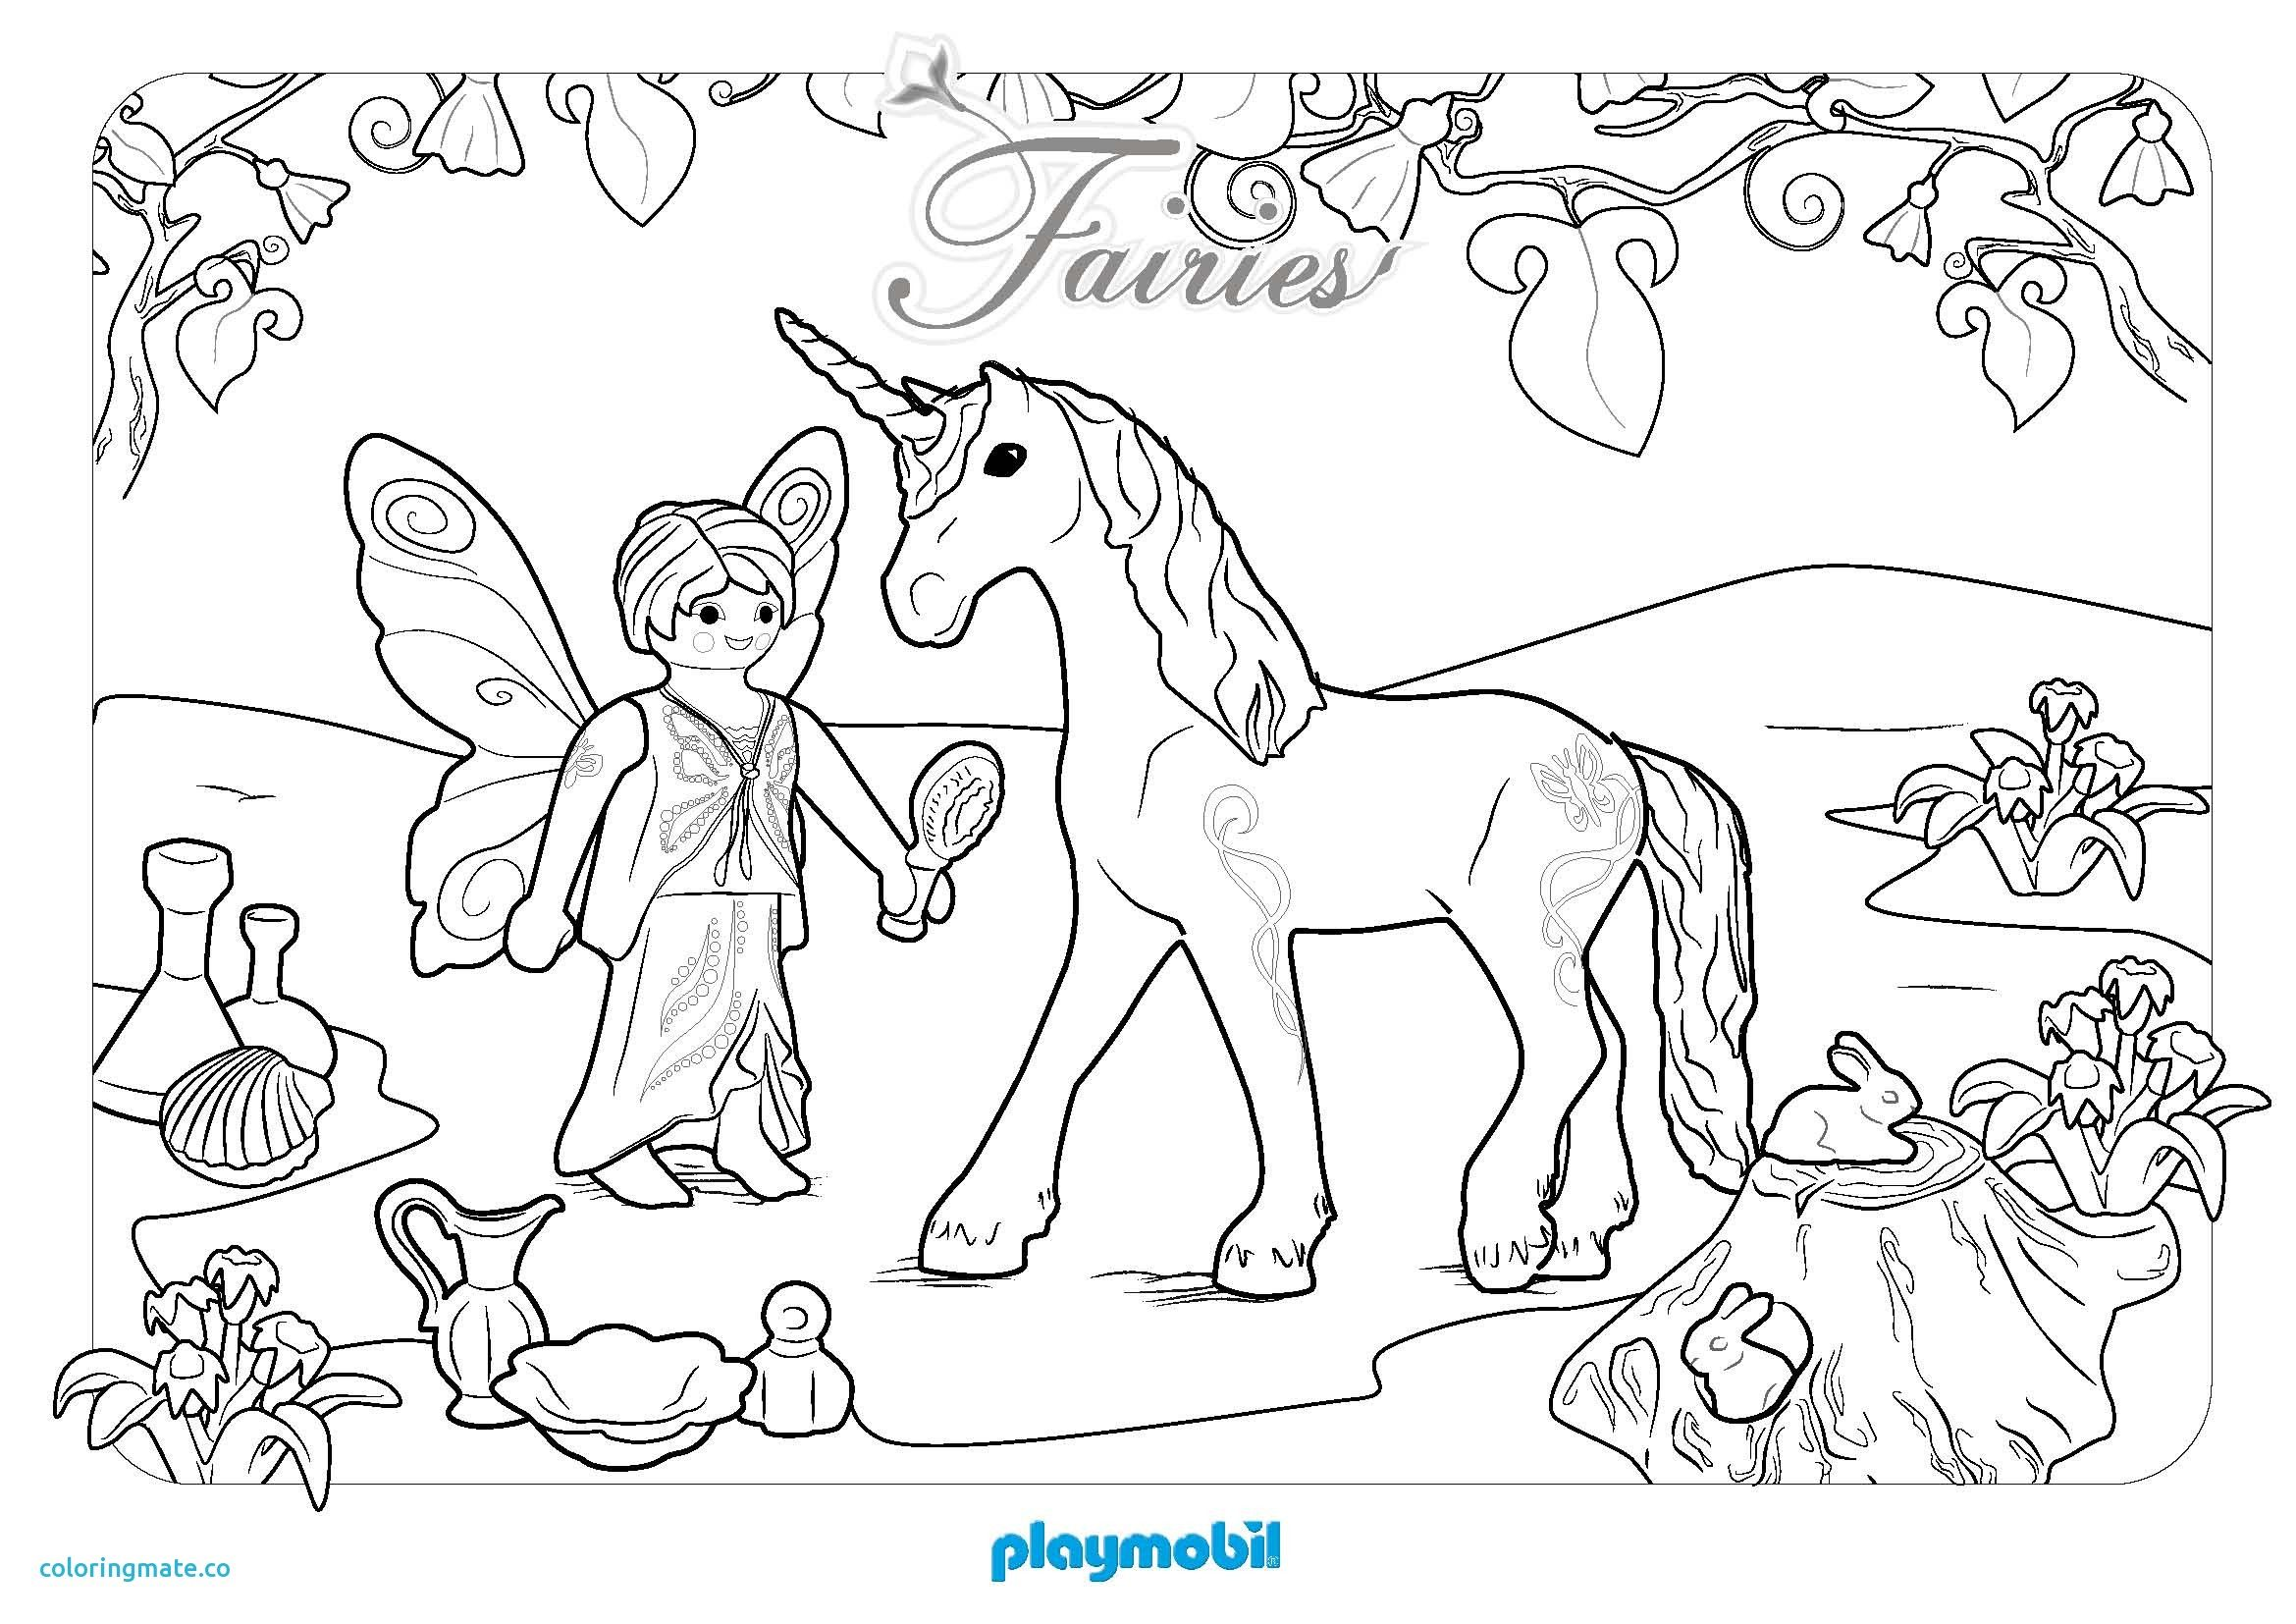 Fee Playmobil Coloriage Licorne.Coloriage Mandala Licorne Luxury 80 Dessins De Coloriage Licorne A